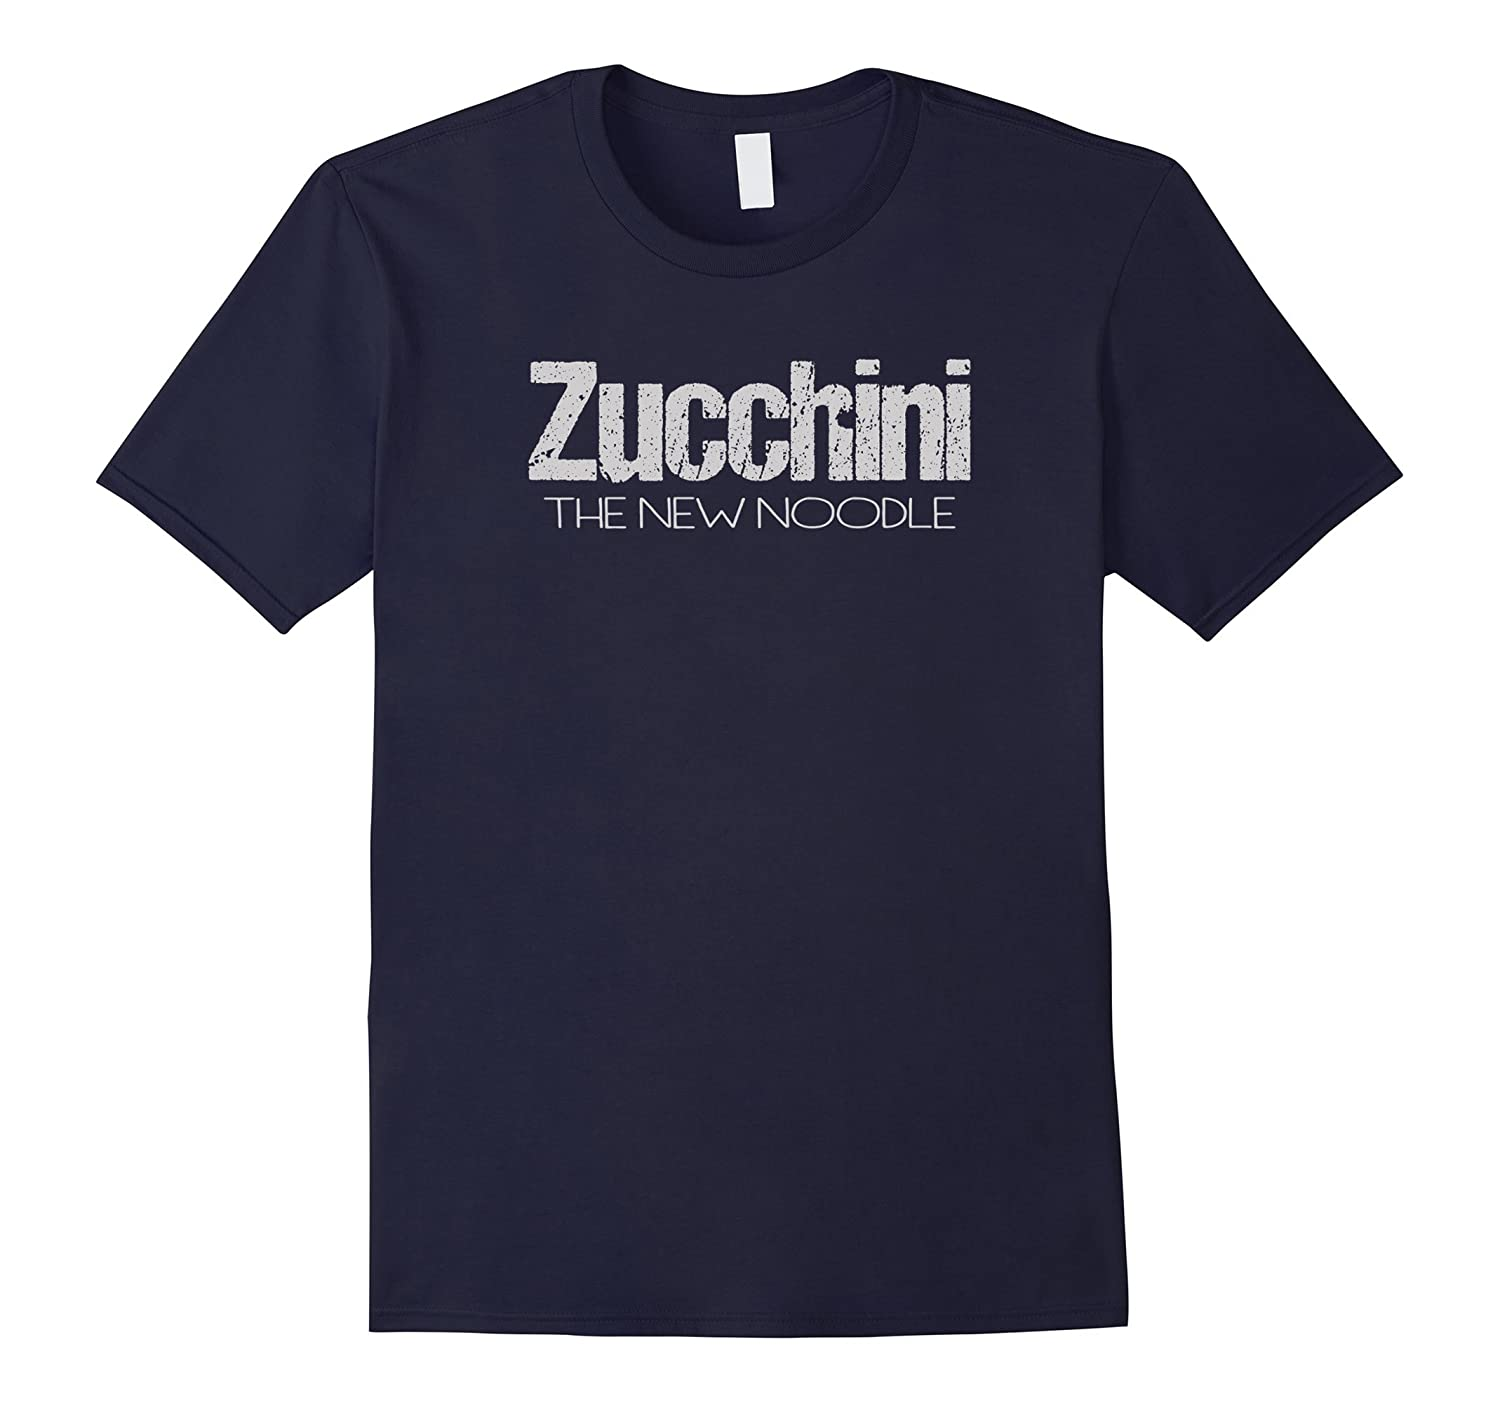 Zucchini the New Noodle T Shirt Vegetarian Gluten Free-FL